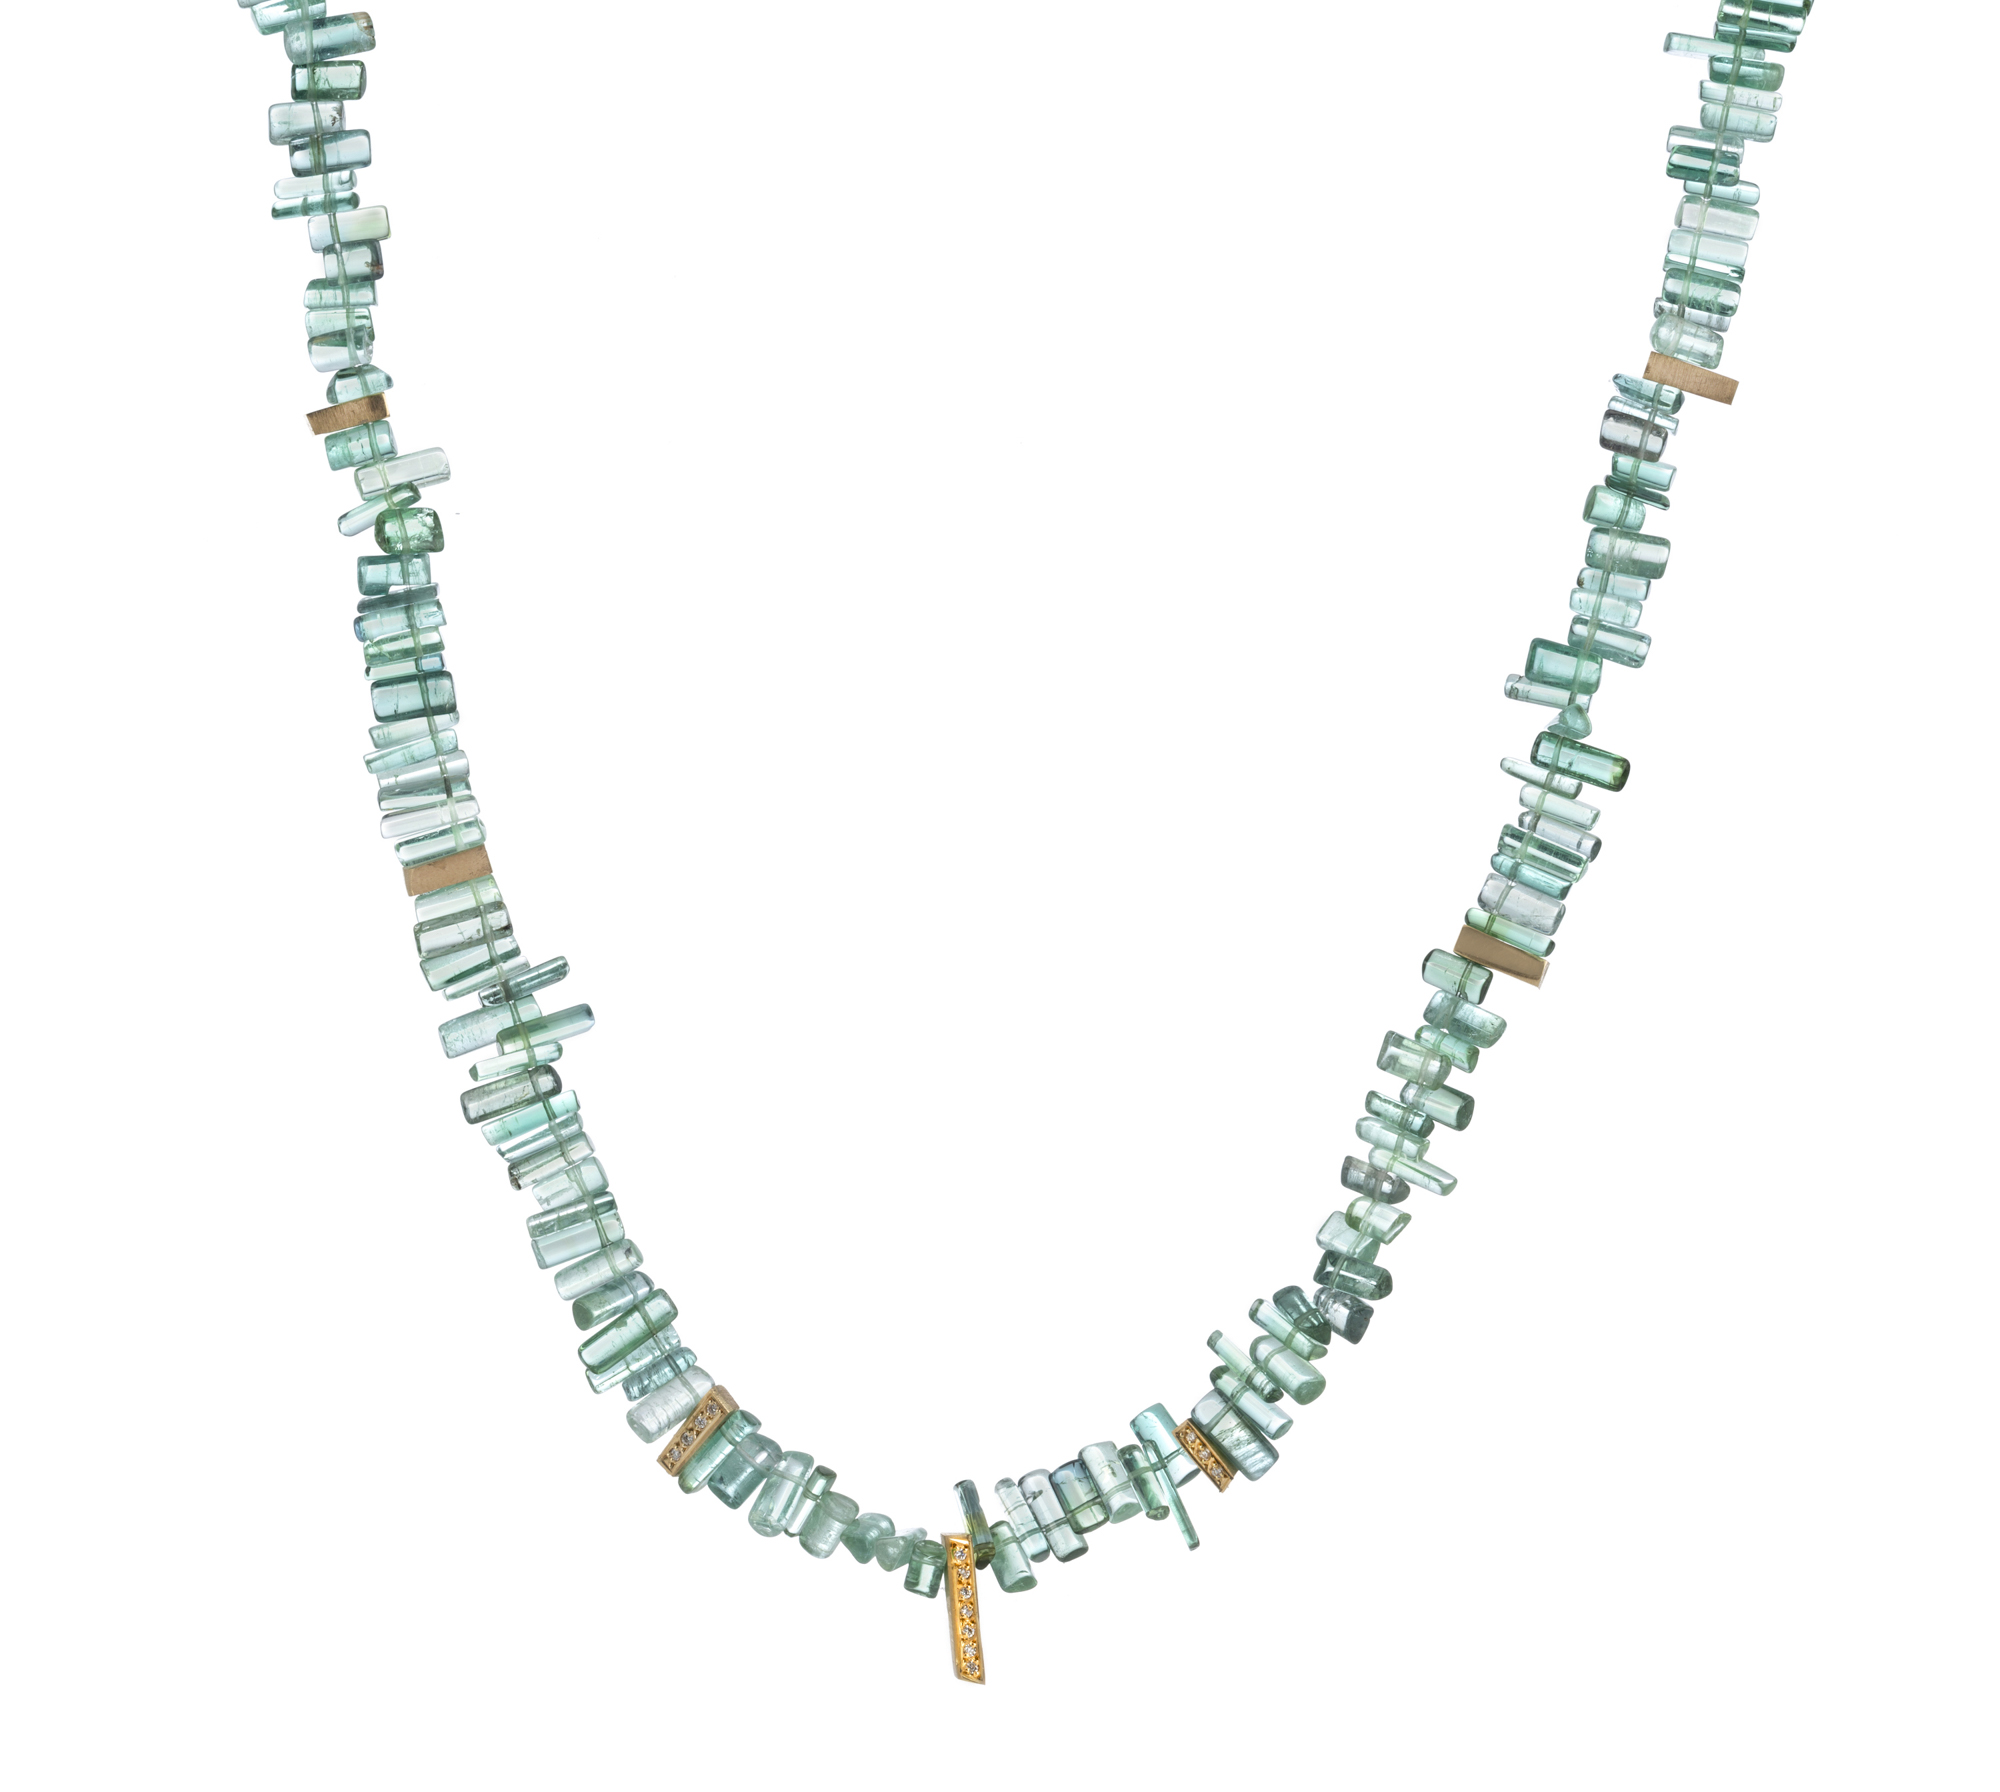 35.8 carats of High quality Tourmaline necklace with 18ct gold stations set with Diamonds.